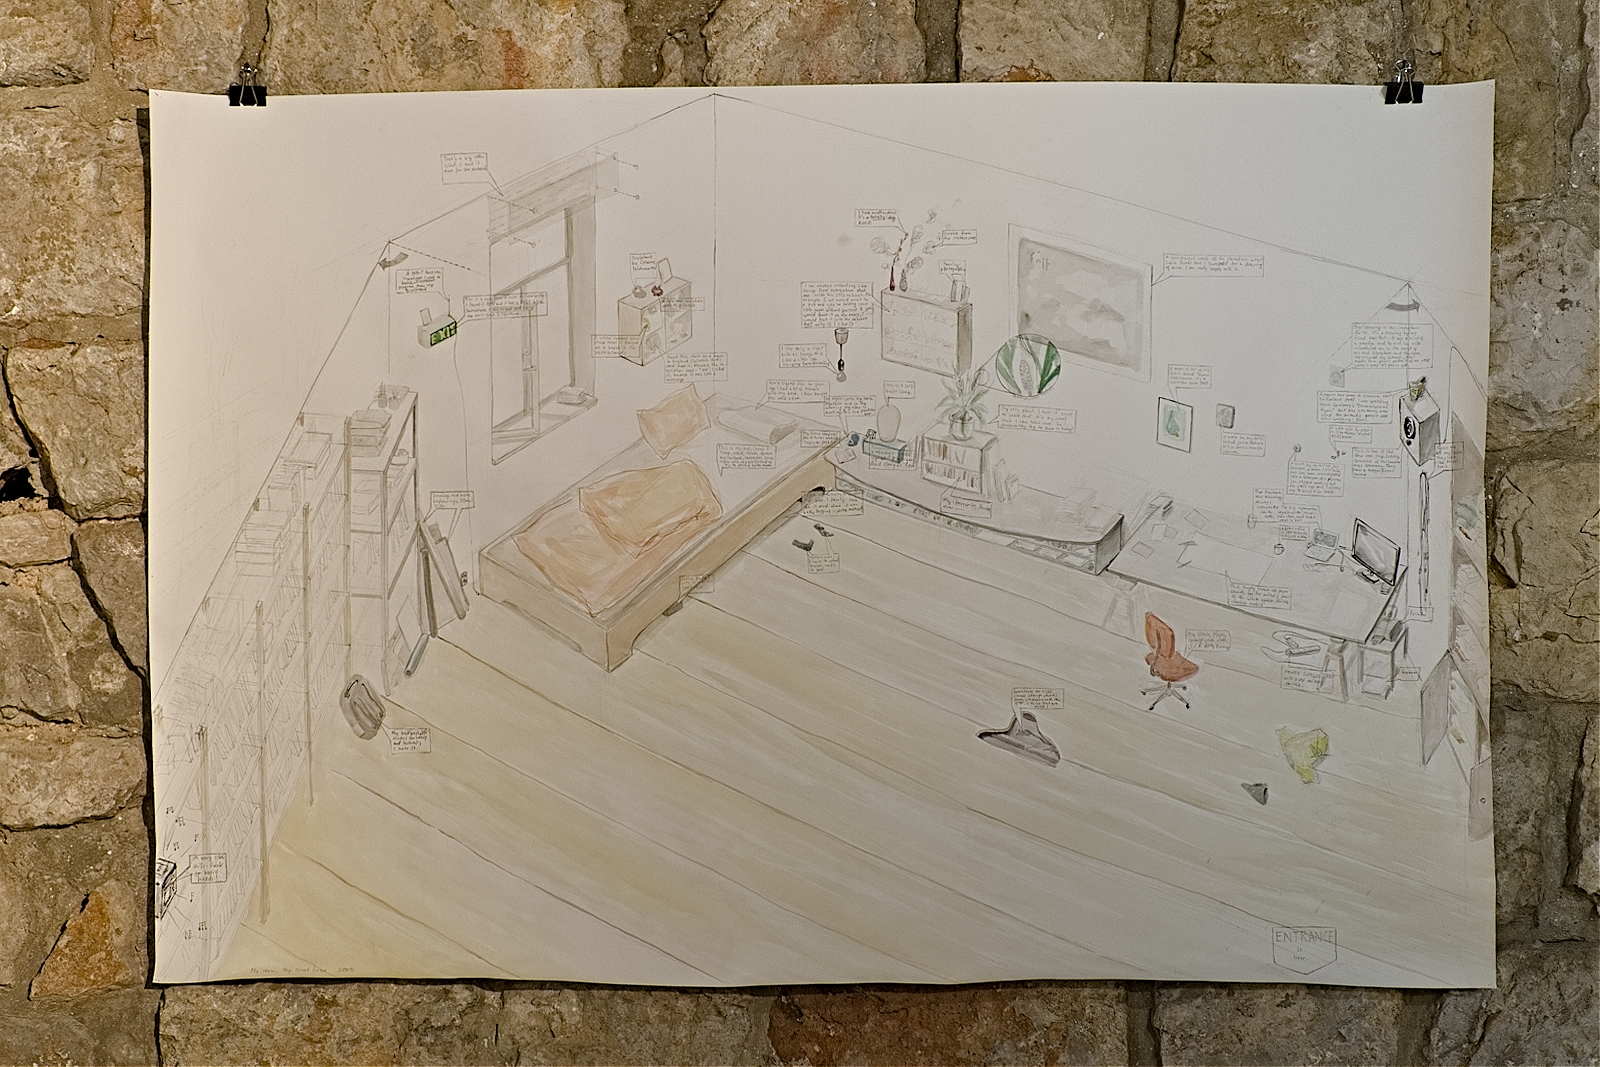 """""""My room"""", 2010, pencil, watercolor, ink on paper, 100 x 70 cm. The drawing is my room at home drawn from memory."""